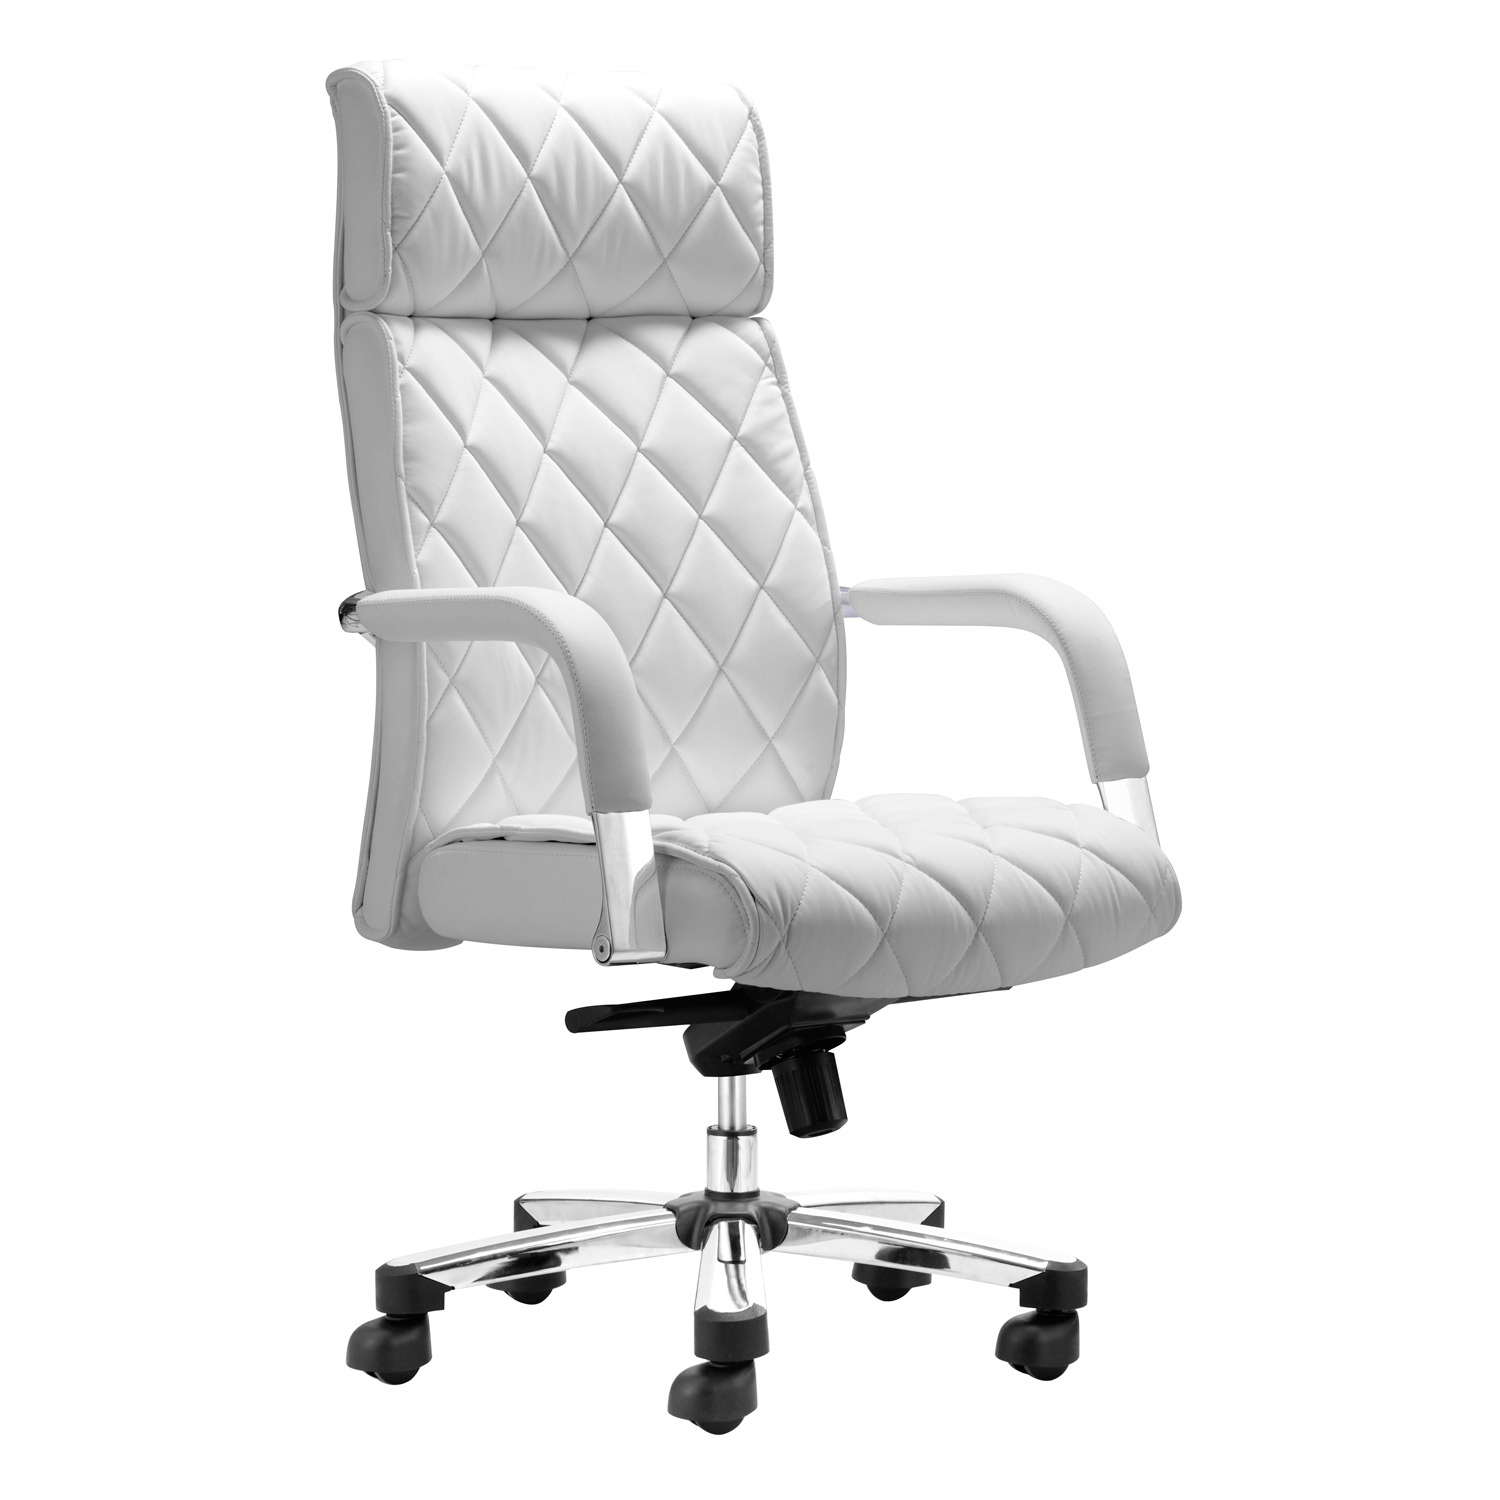 white desk chairs target black fuzzy chair leather ideas on foter